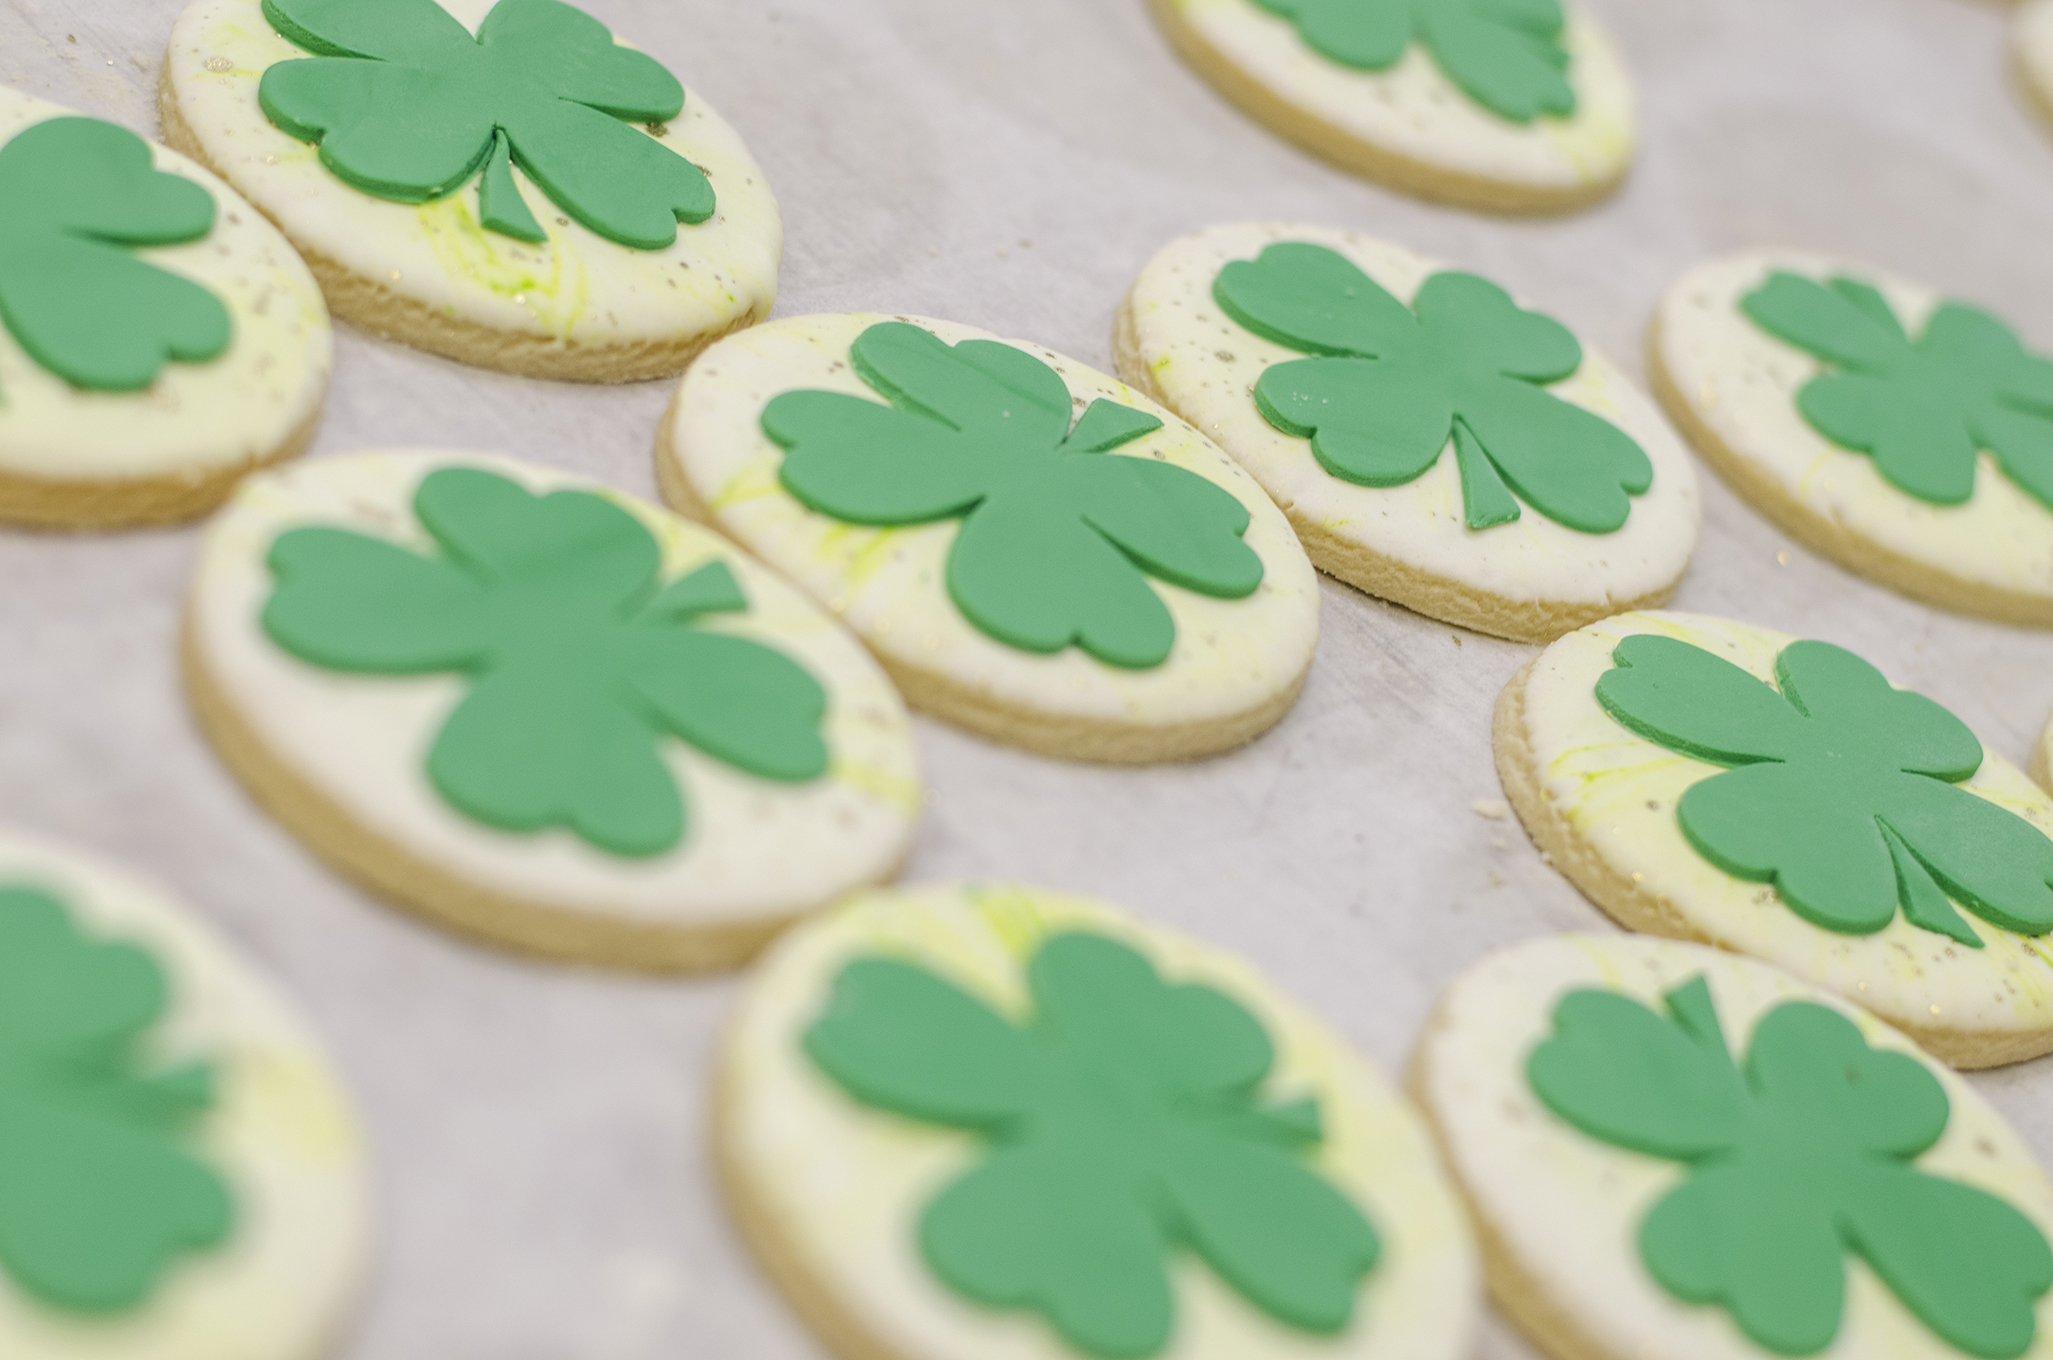 St. Patrick's Day themed sugar cookies from Sweet Revenge Bake Shop in Windsor, Ontario.